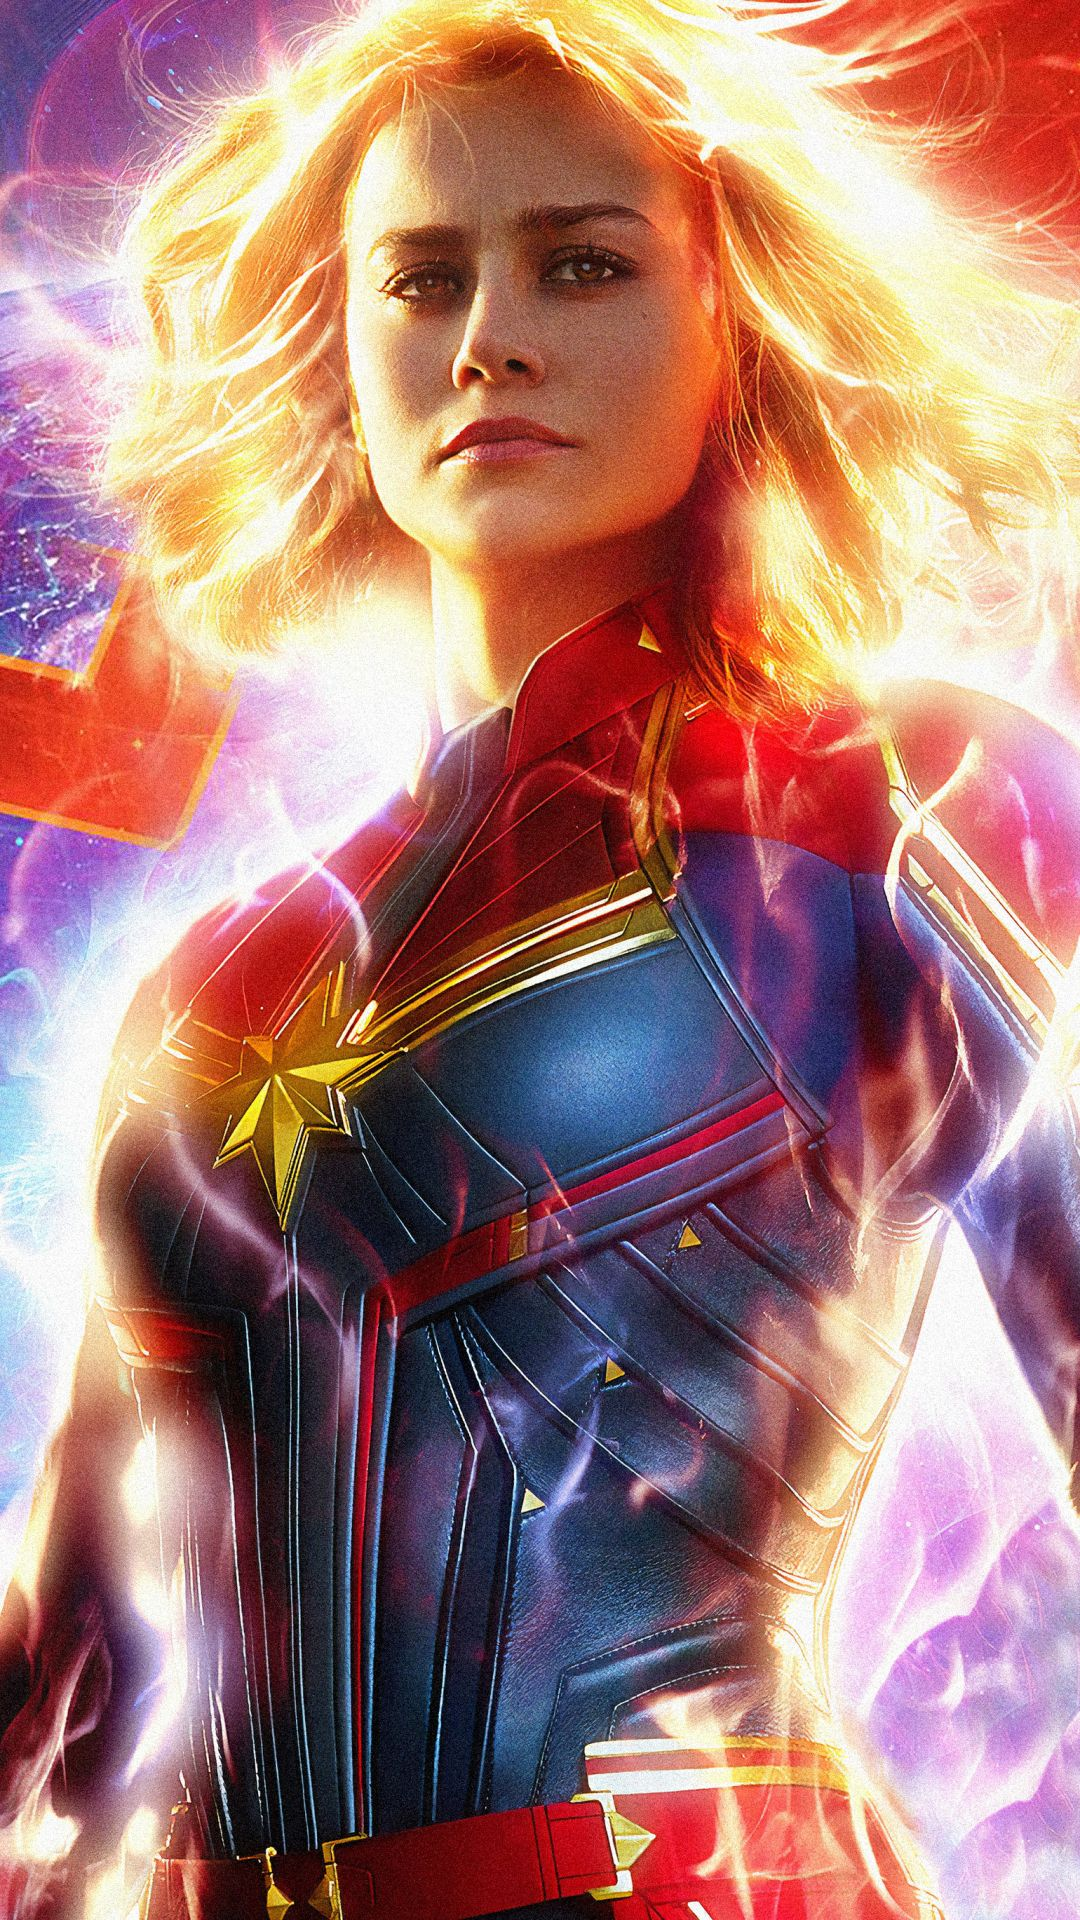 Captain Marvel Wallpapers Hd Resolution Hupages Download Iphone Wallpapers Marvel Movie Posters Marvel Marvel Wallpaper Hd